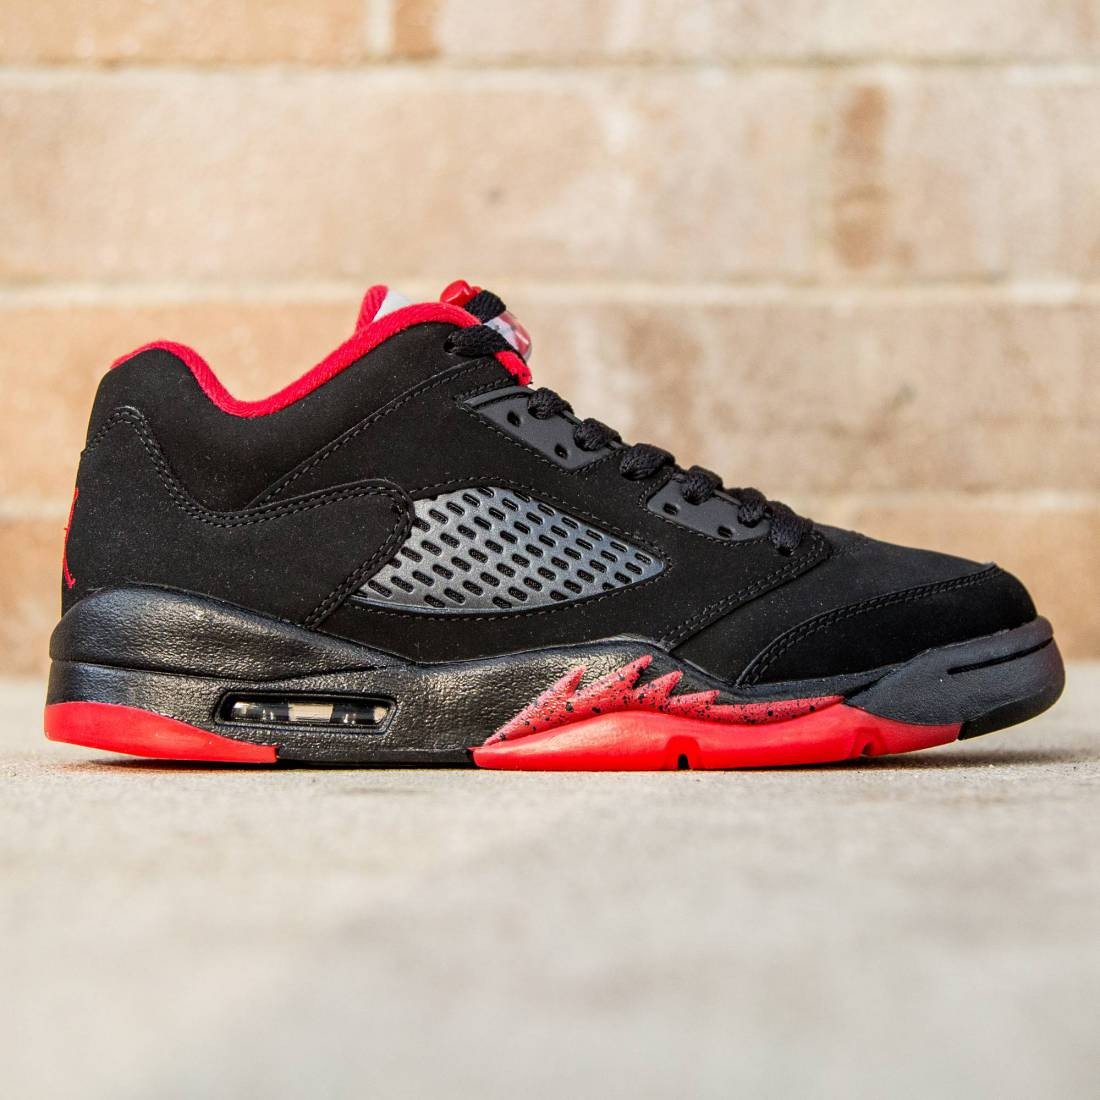 best sneakers 9fc67 b5199 Air Jordan 5 Retro Low GS Big Kids (black / gym red / black)